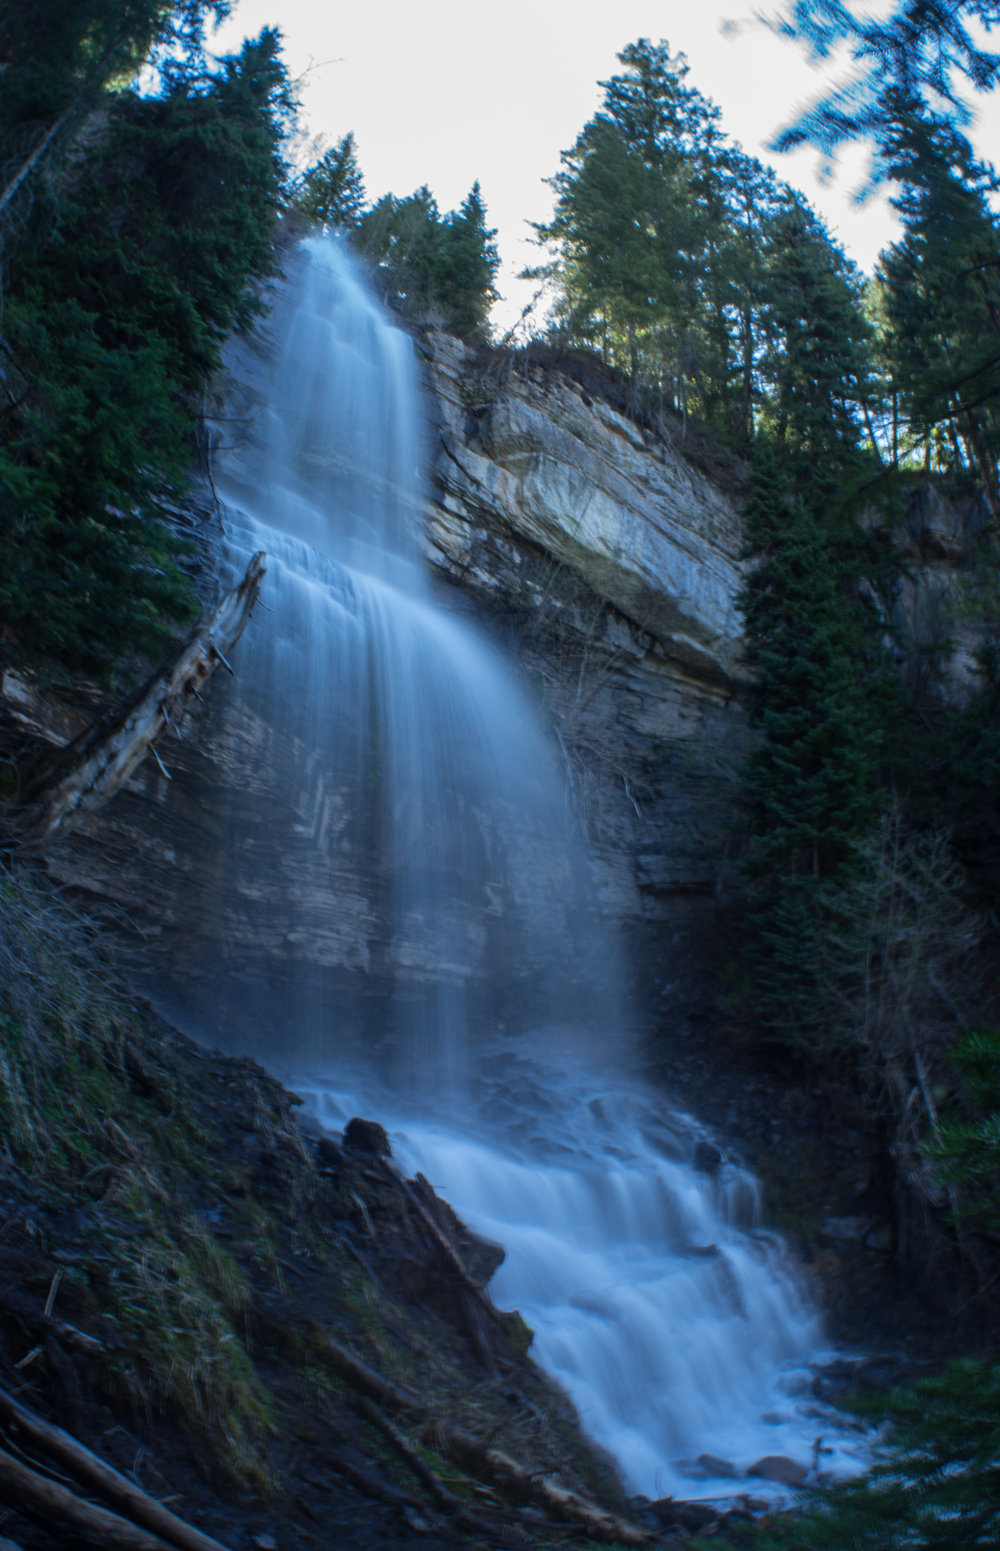 eastVwaterfall (9 of 1).jpg